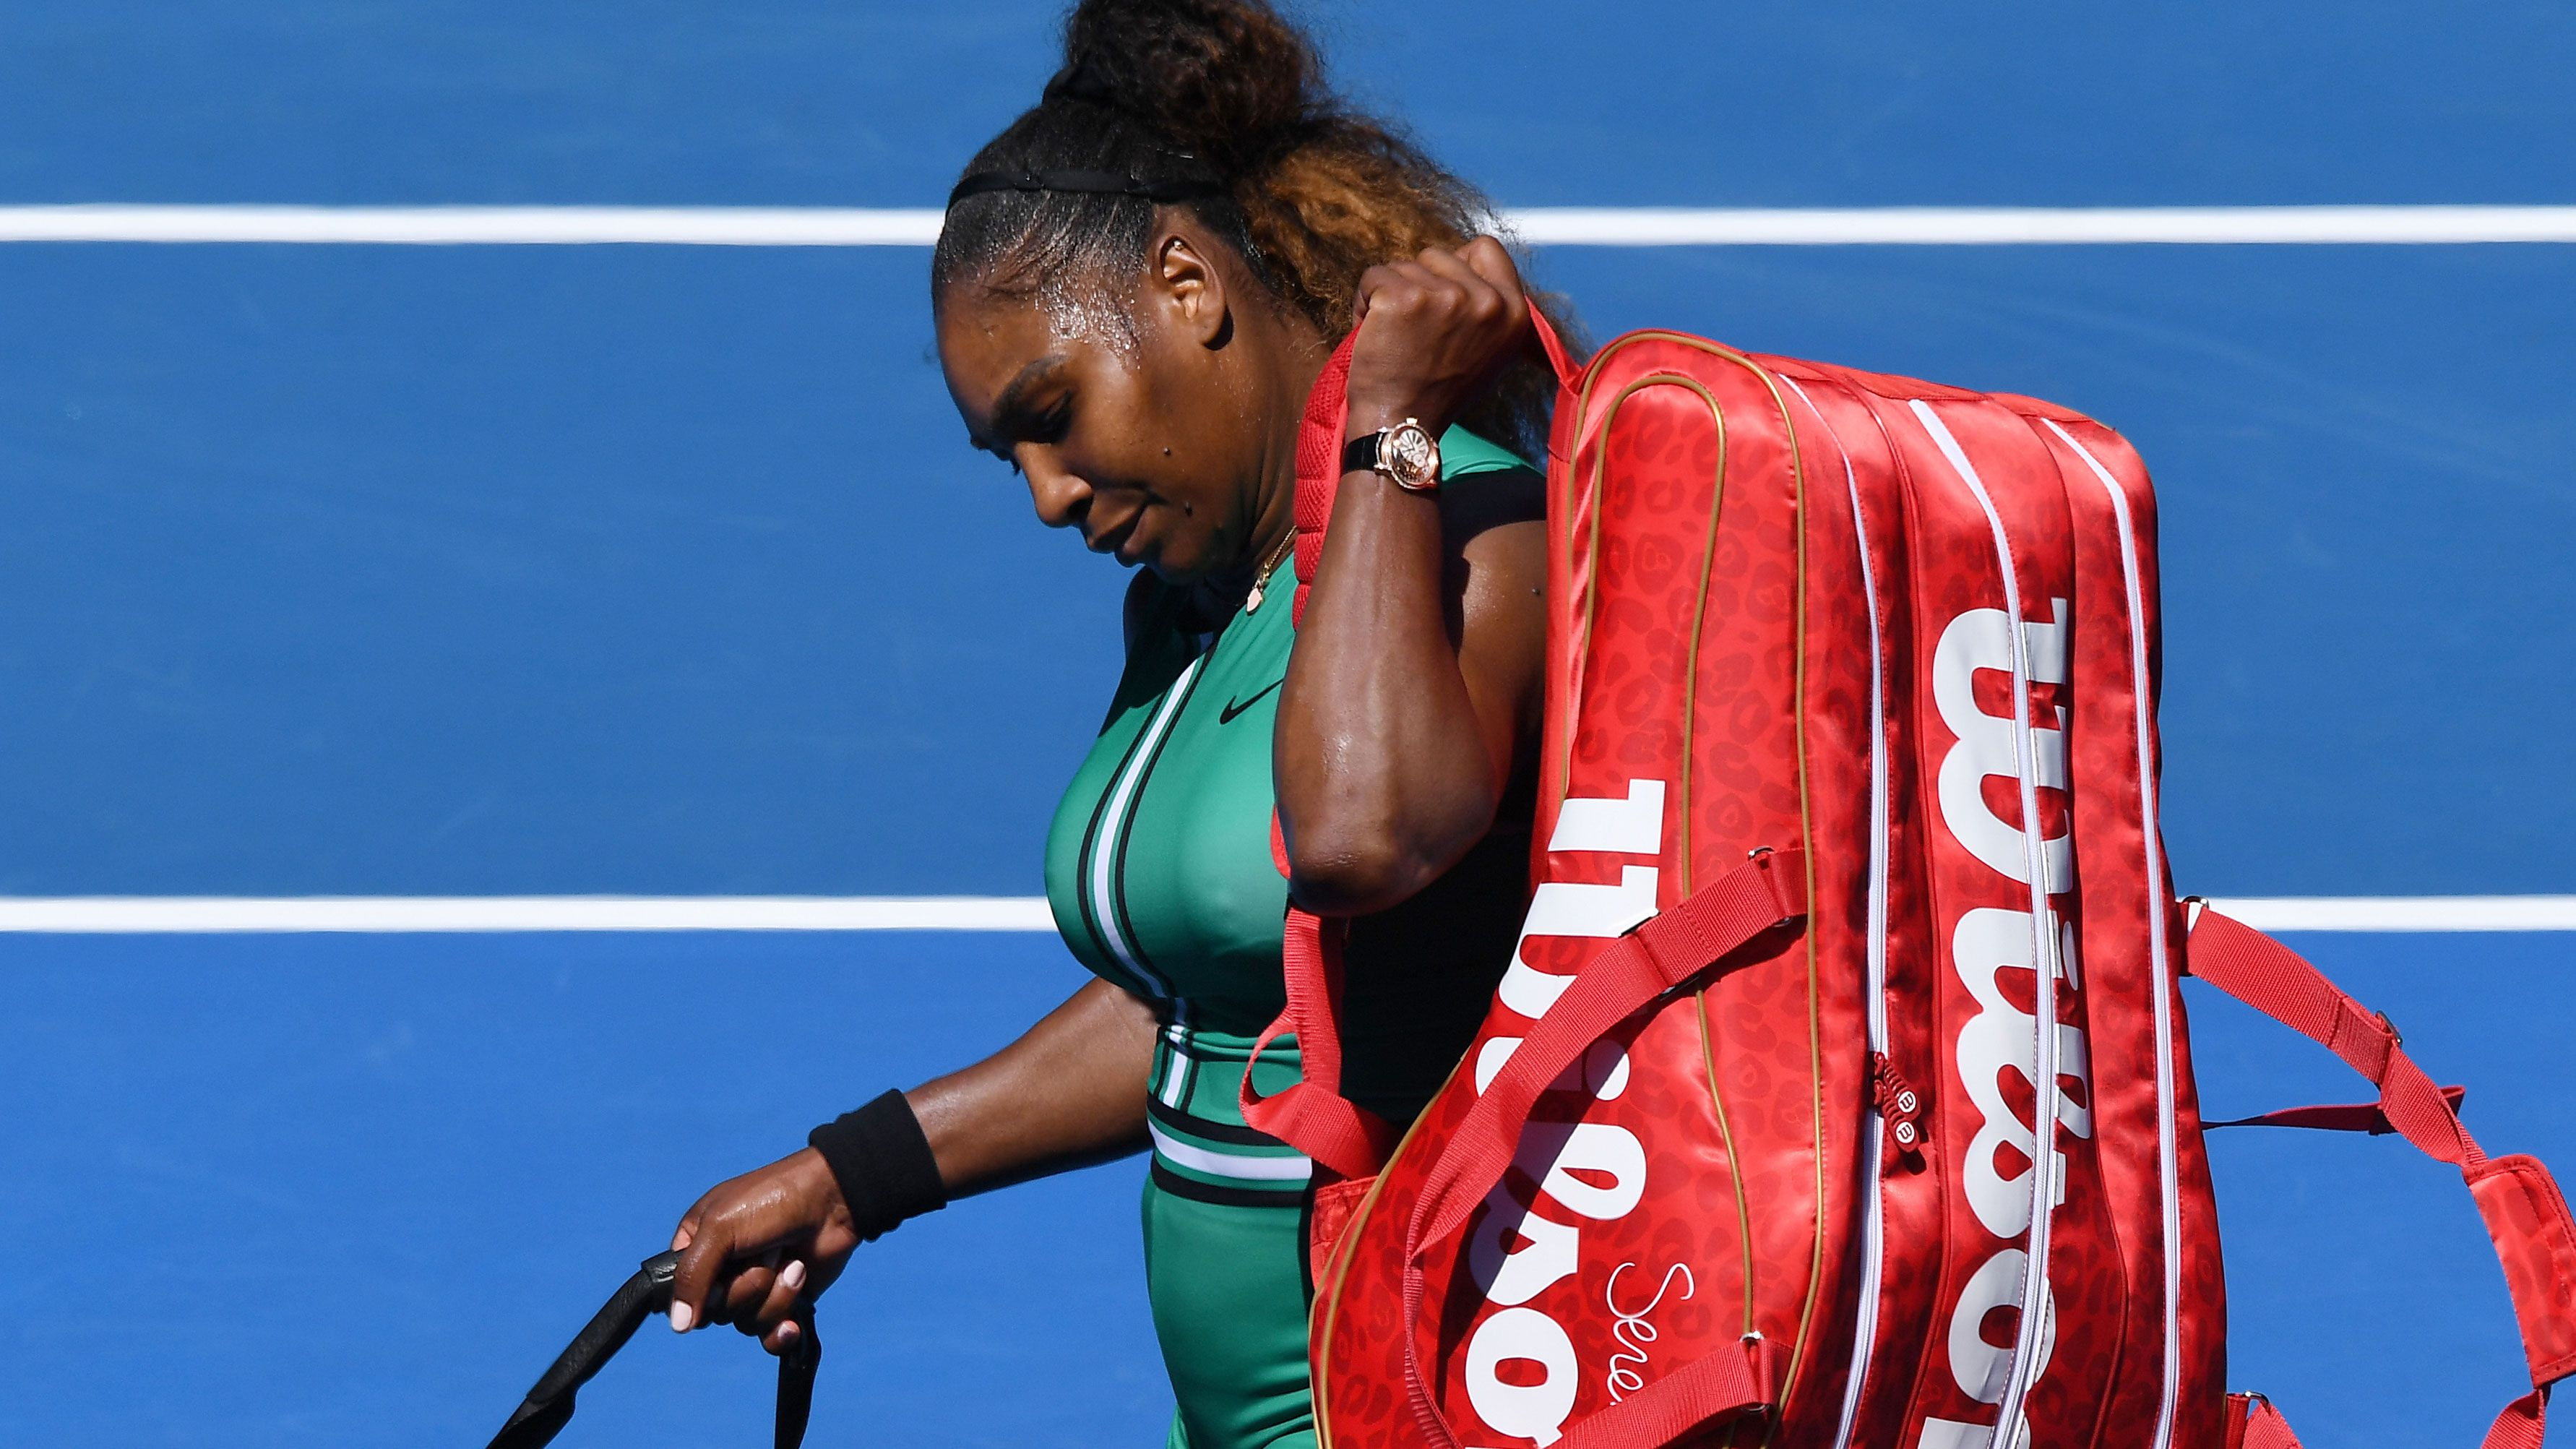 Serena Williams dumped out of Australian Open in shock loss to Karolina Pliskova